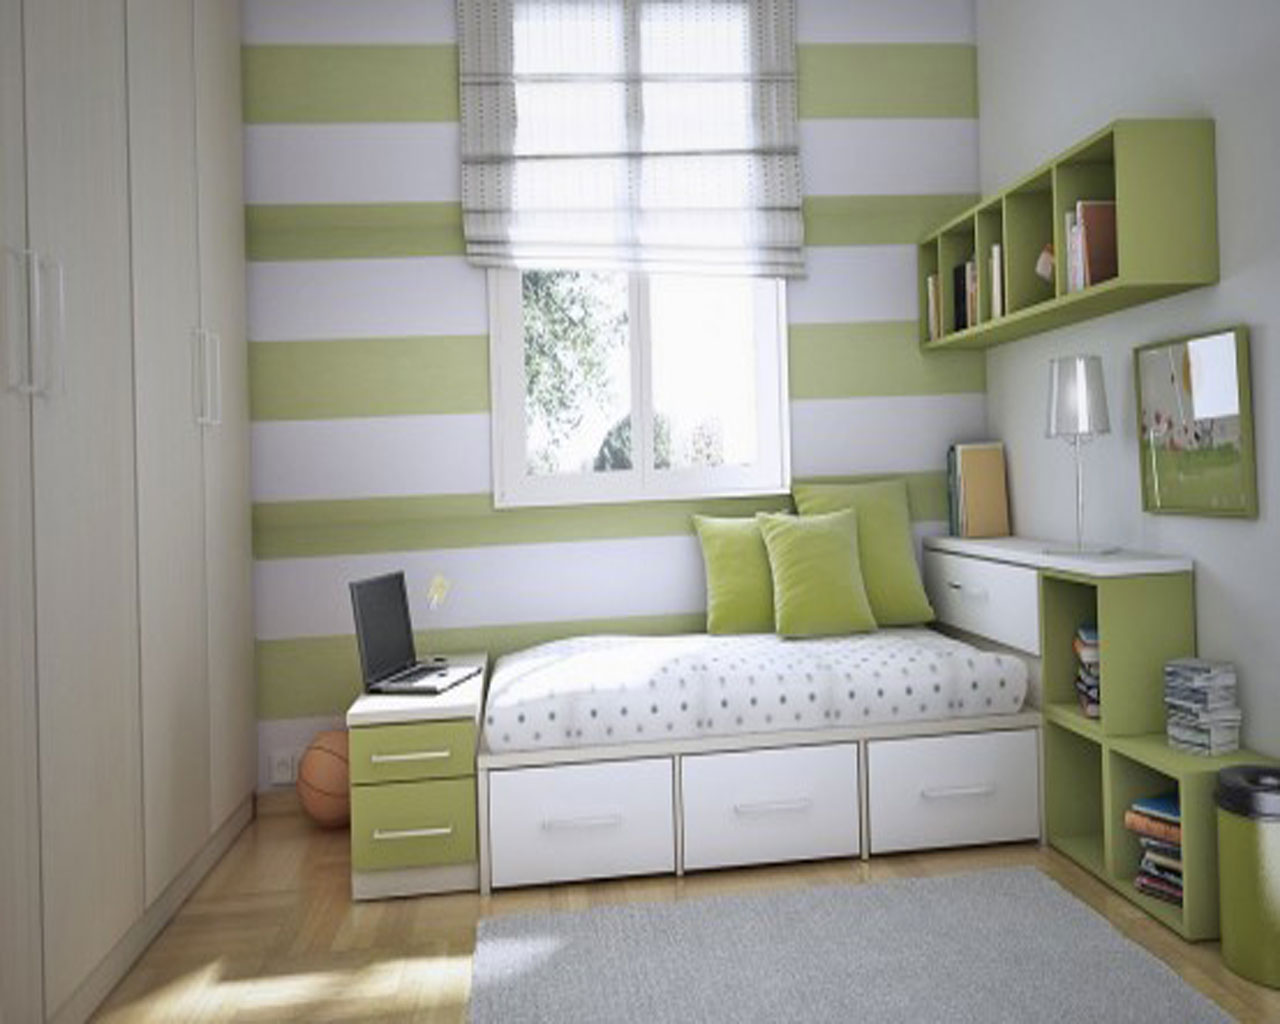 Best kids room design ideas times news uk for Bedroom ideas for teens